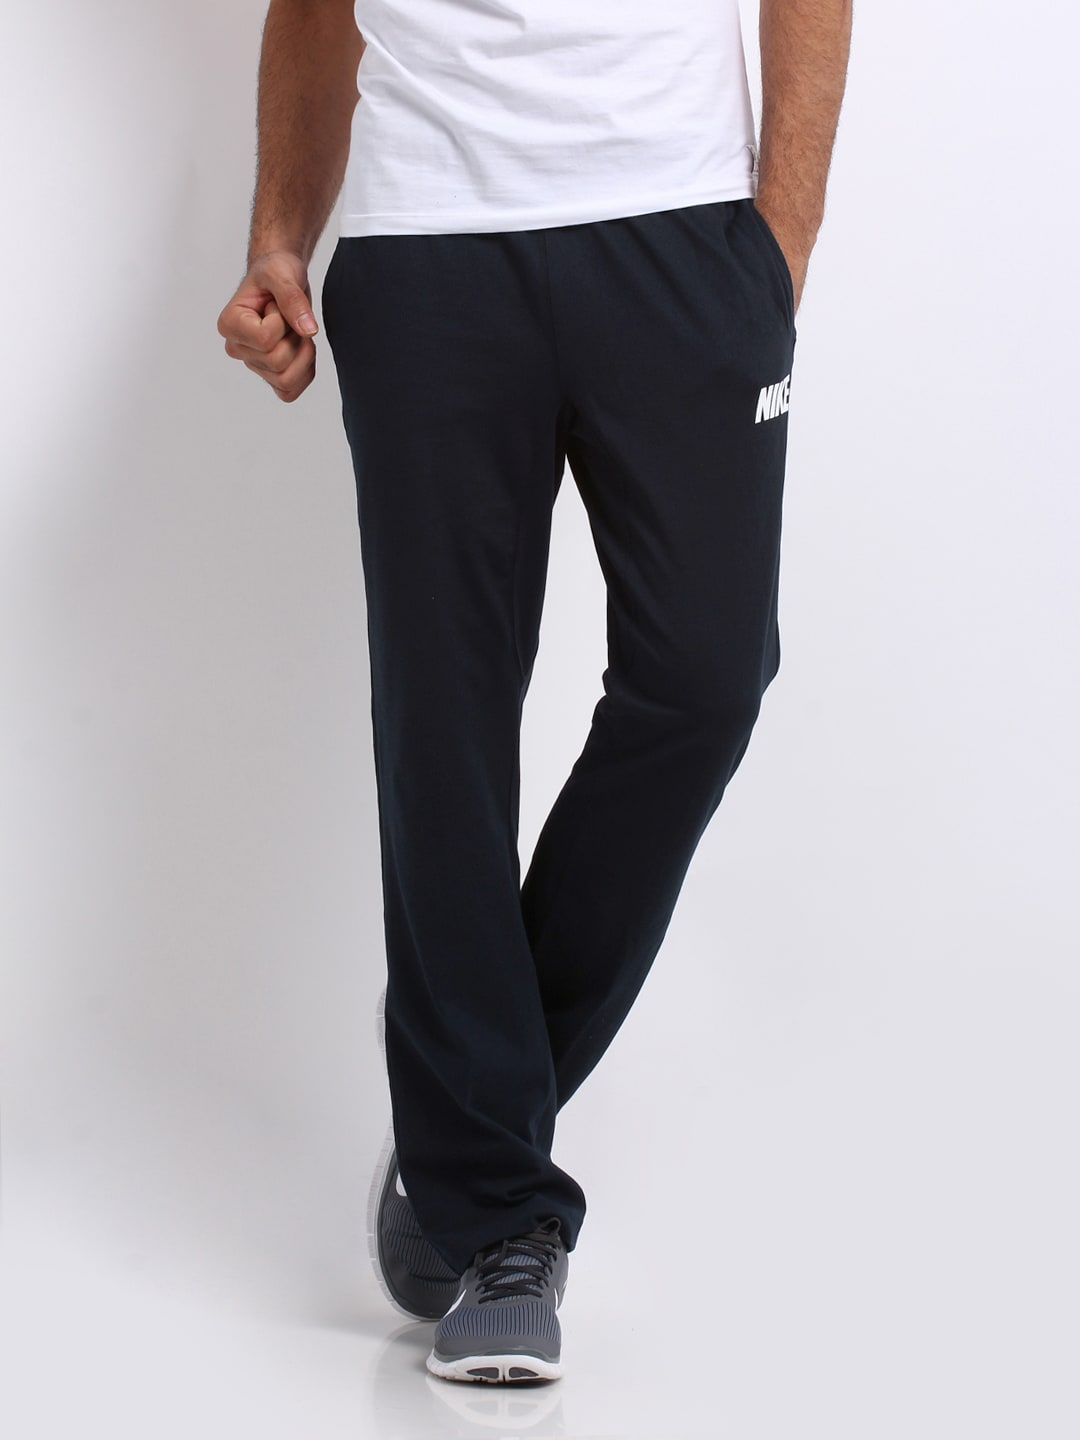 Creative  Black Nike Clothing For Men  Buy Nike Men Clothing Online In India